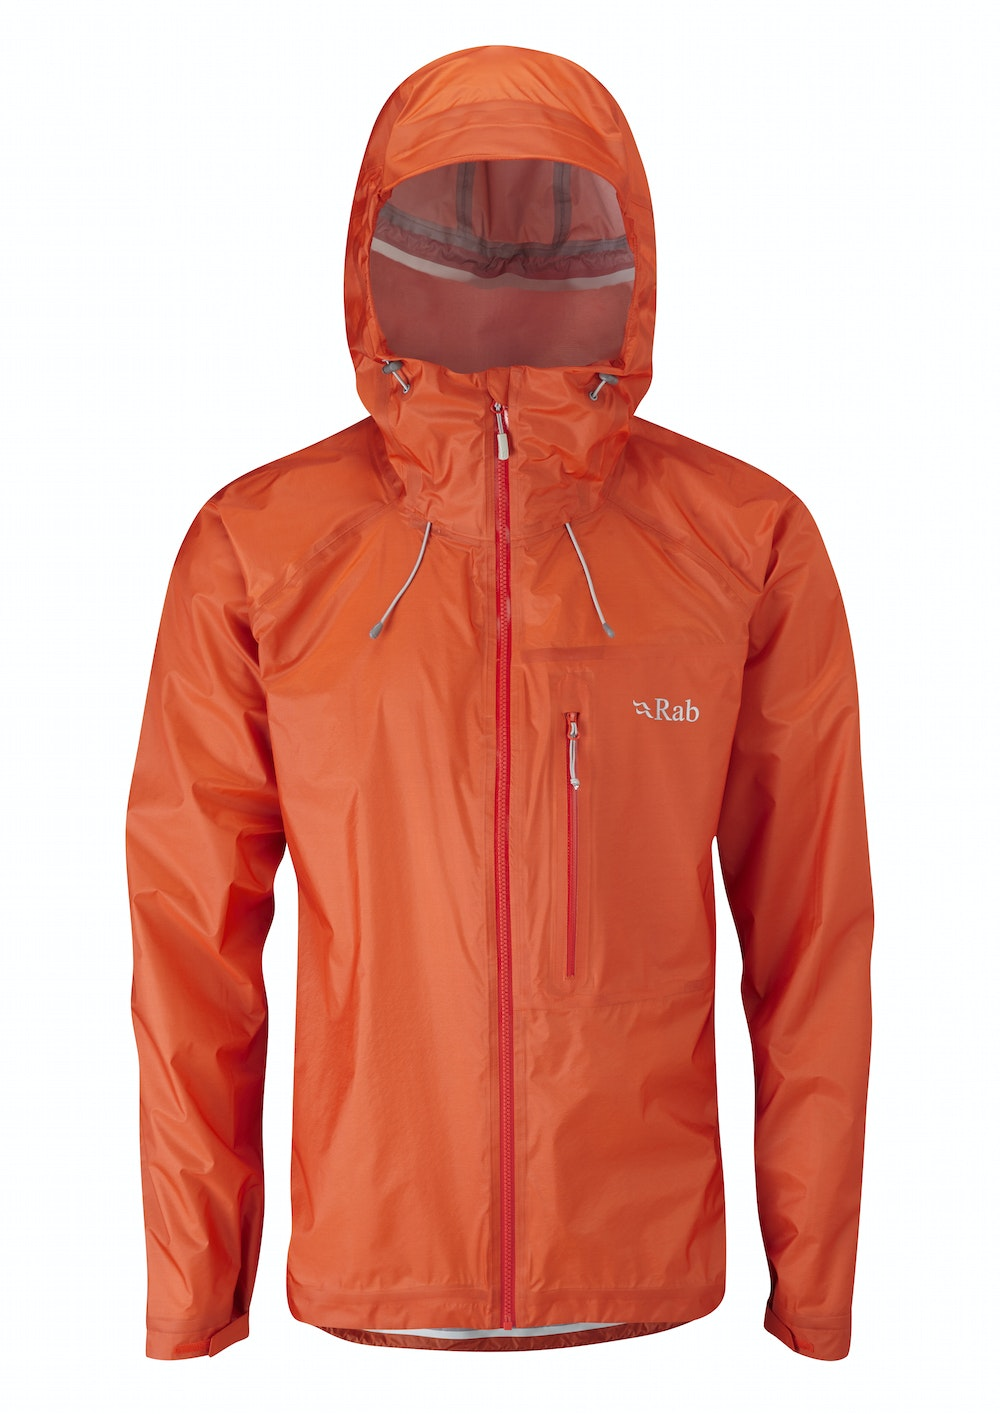 Rab jacket for comp